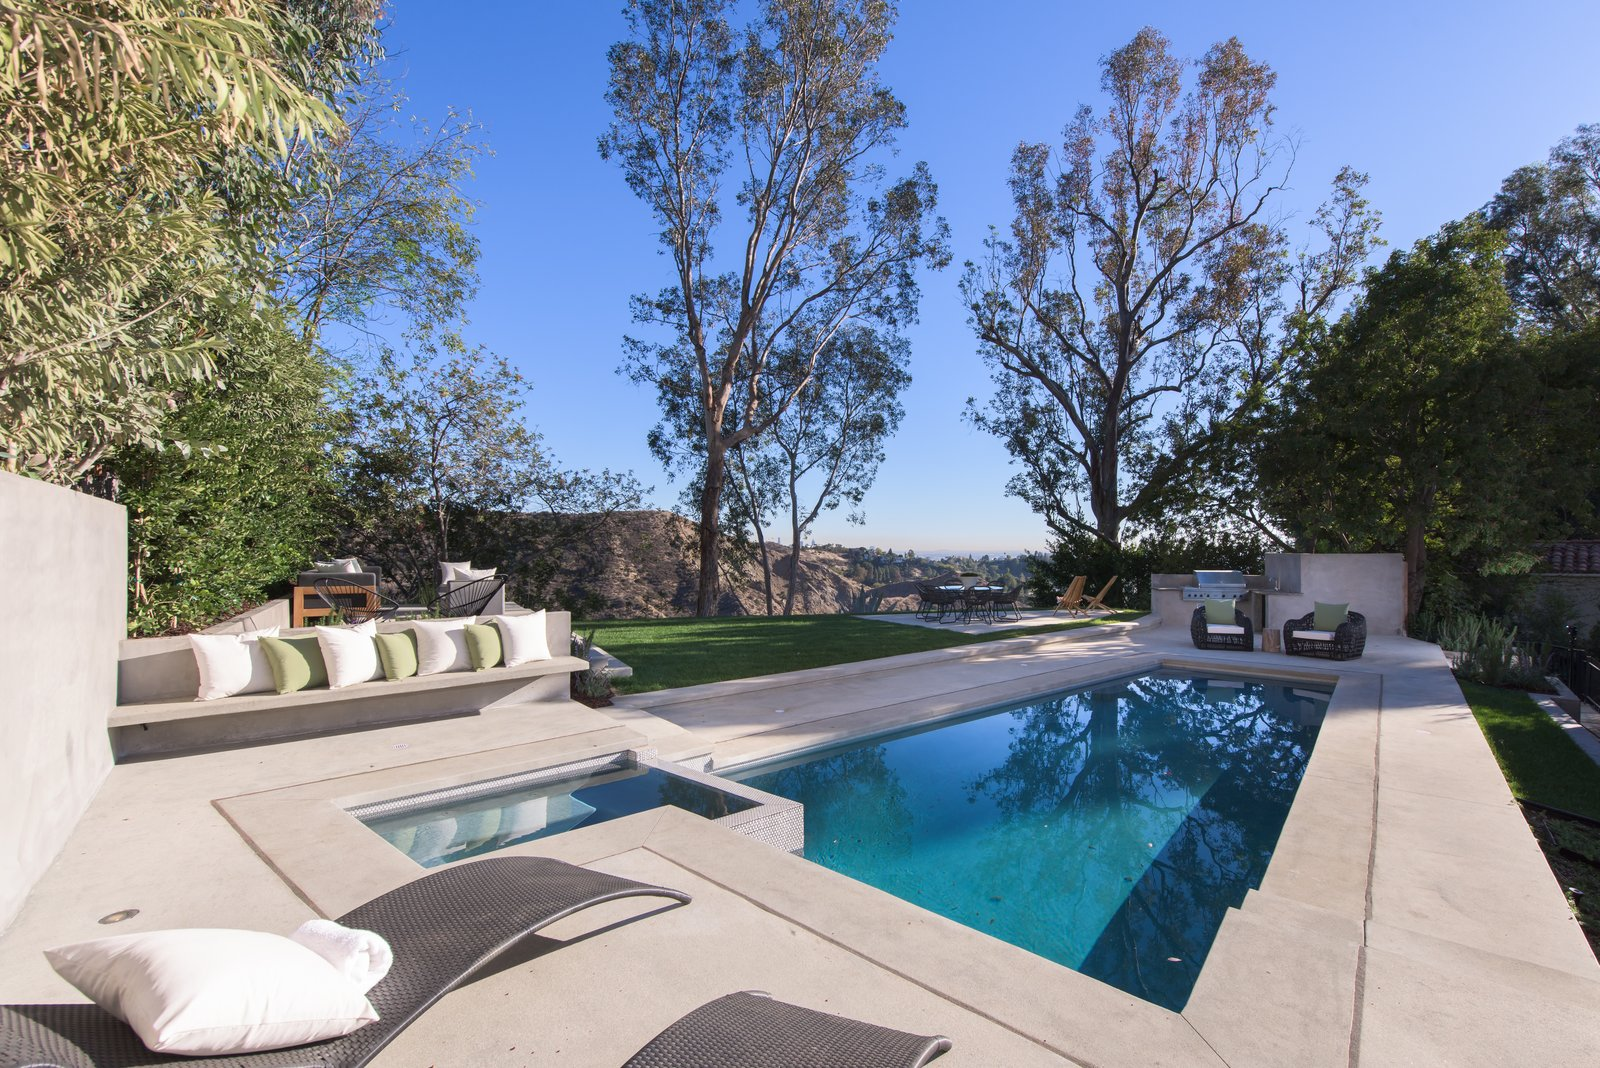 Outdoor, Small, Large, Grass, Back Yard, Trees, Hot Tub, and Plunge An outdoor kitchen, green lawn and pool makes the rear-yard the perfect spot of outdoor soirees.  Best Outdoor Plunge Hot Tub Photos from Red Hot Chili Peppers Frontman Anthony Kiedis' Former L.A. Abode Asks $3.2M